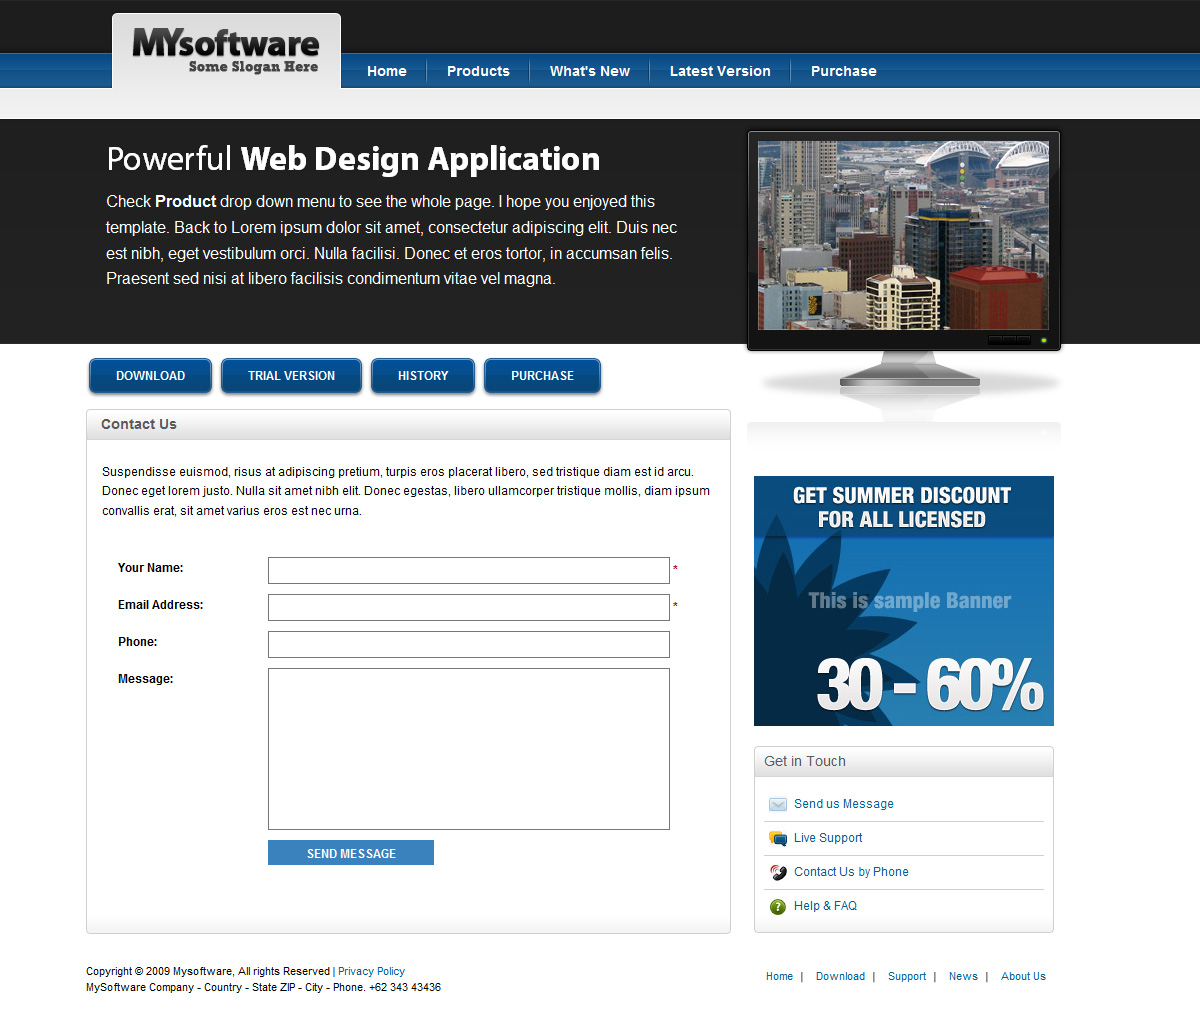 Clean Blue & Black Mac Style Software Template - Clean Blue & Black Mac Style Software Template - Contact Us Page